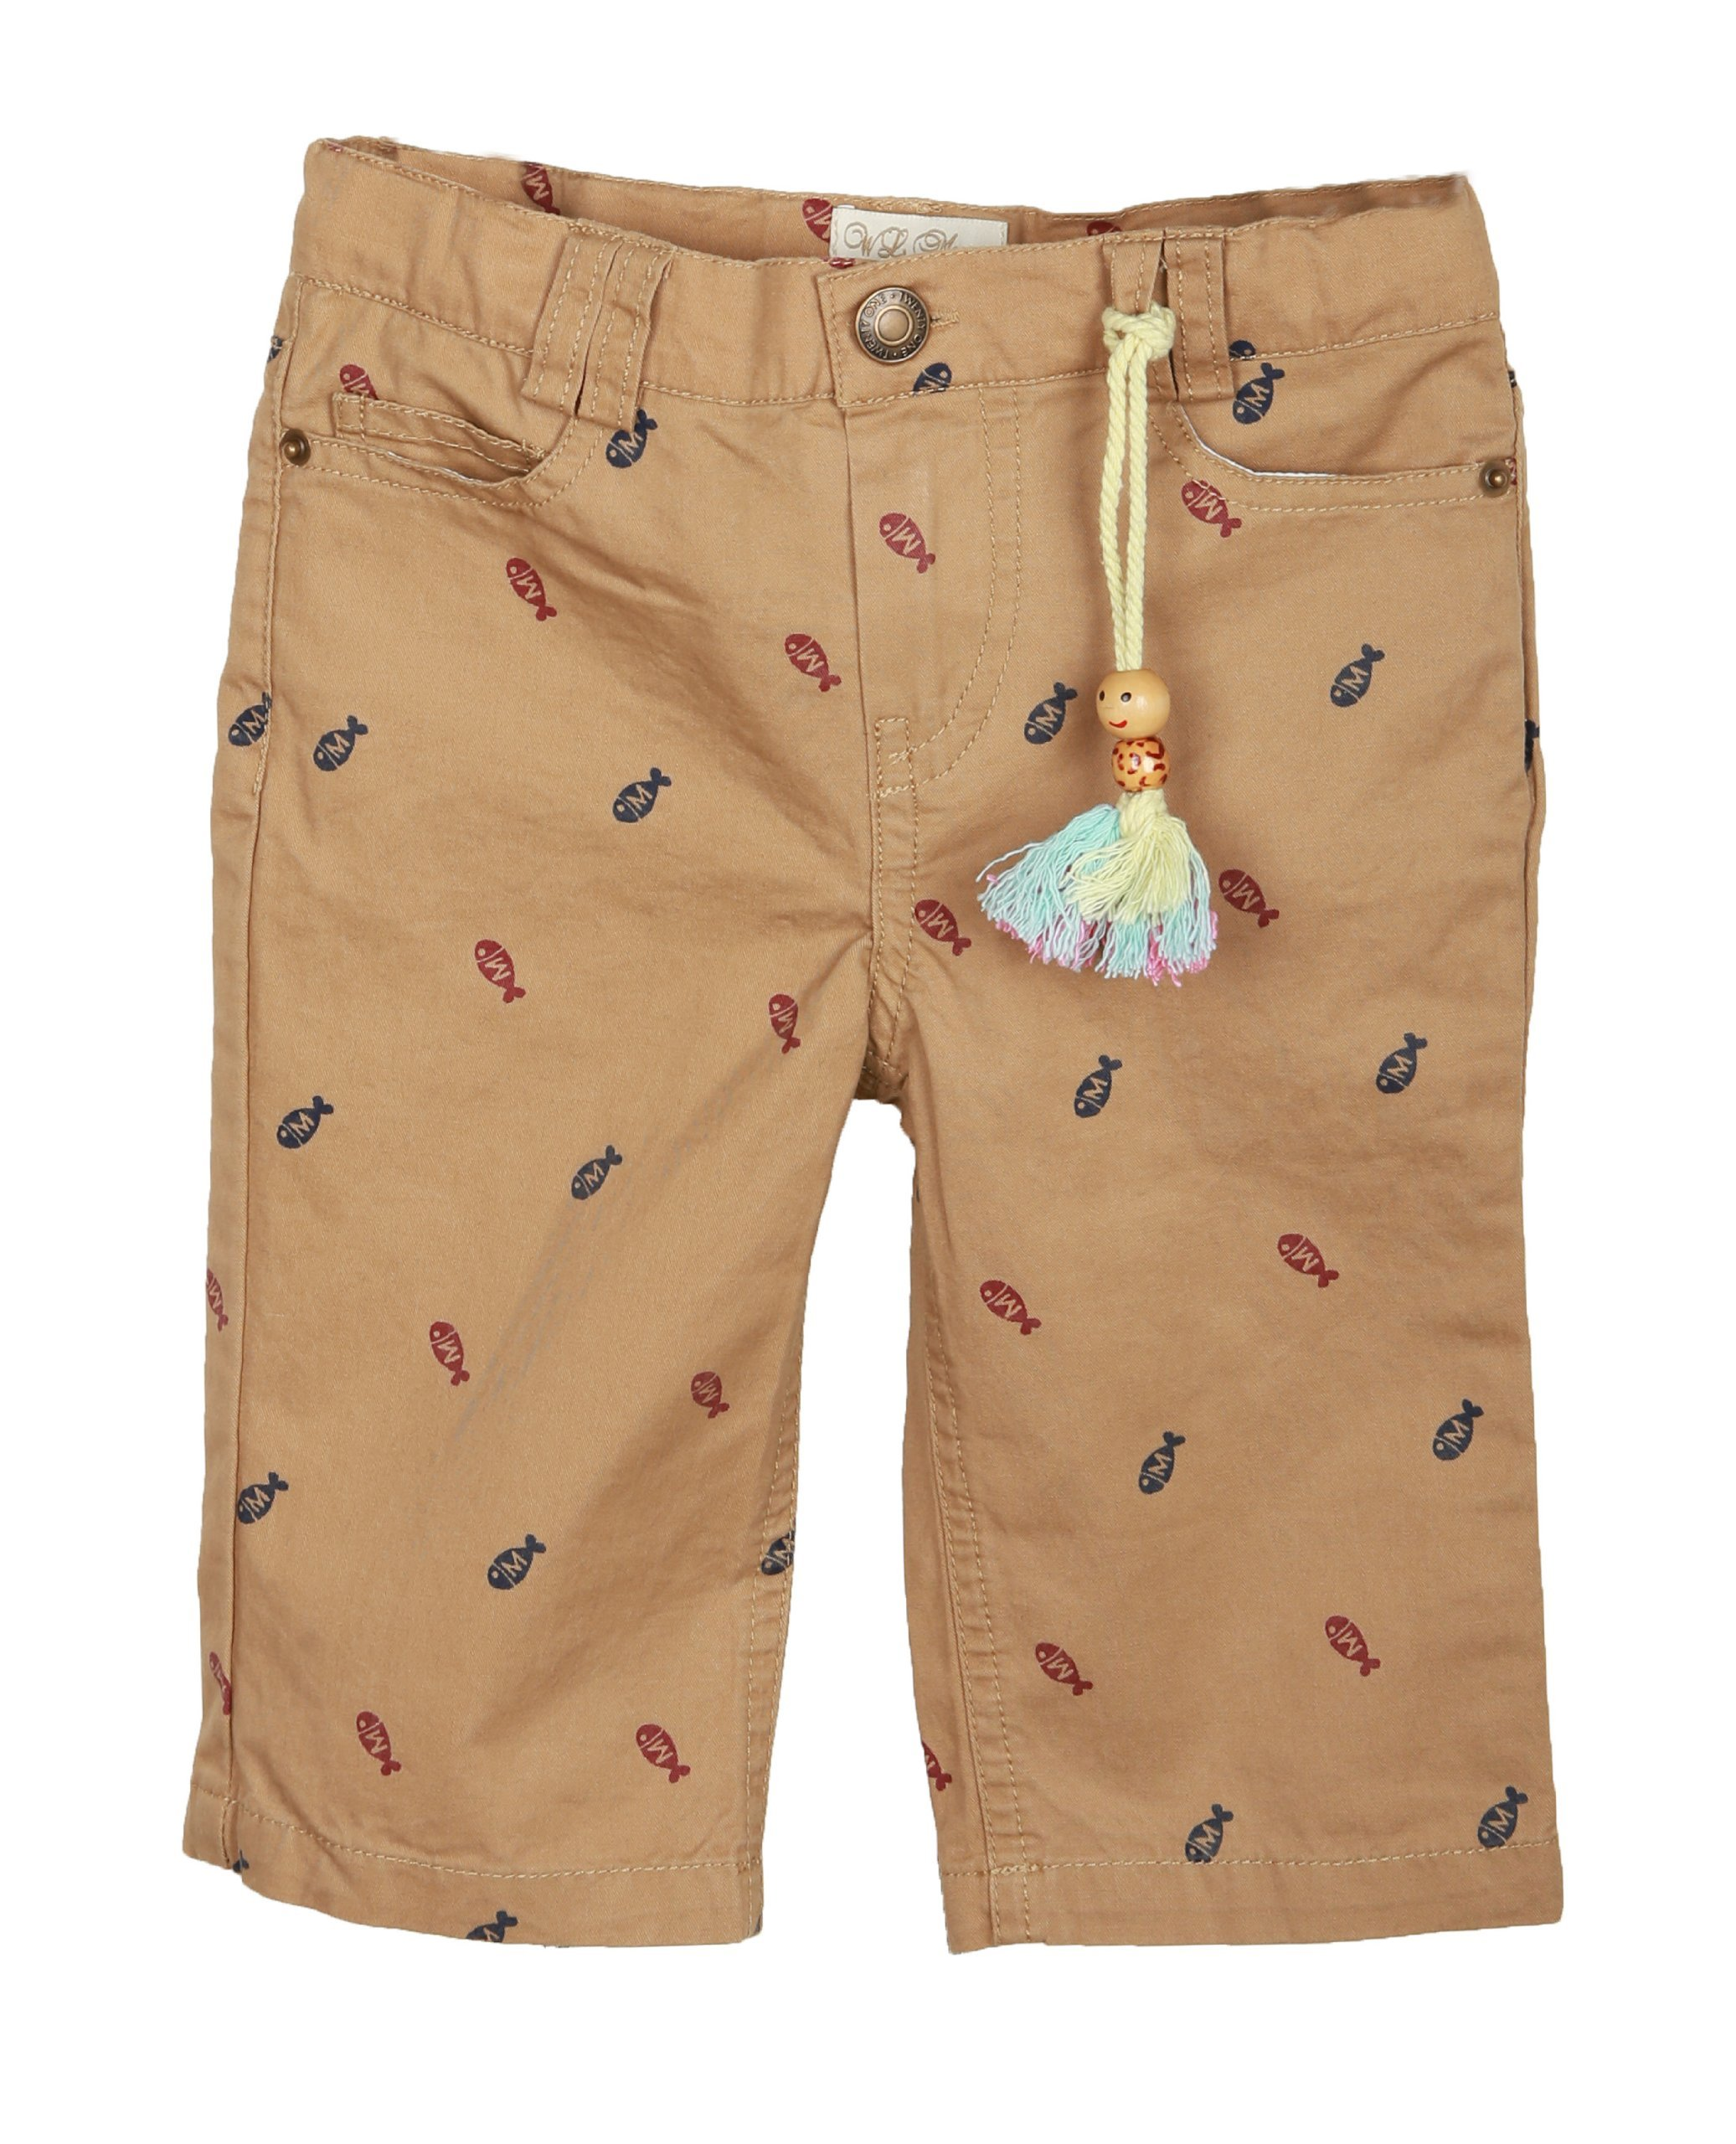 Richie House Little Boys' short pants with zip fly and pockets RH0609-4/5